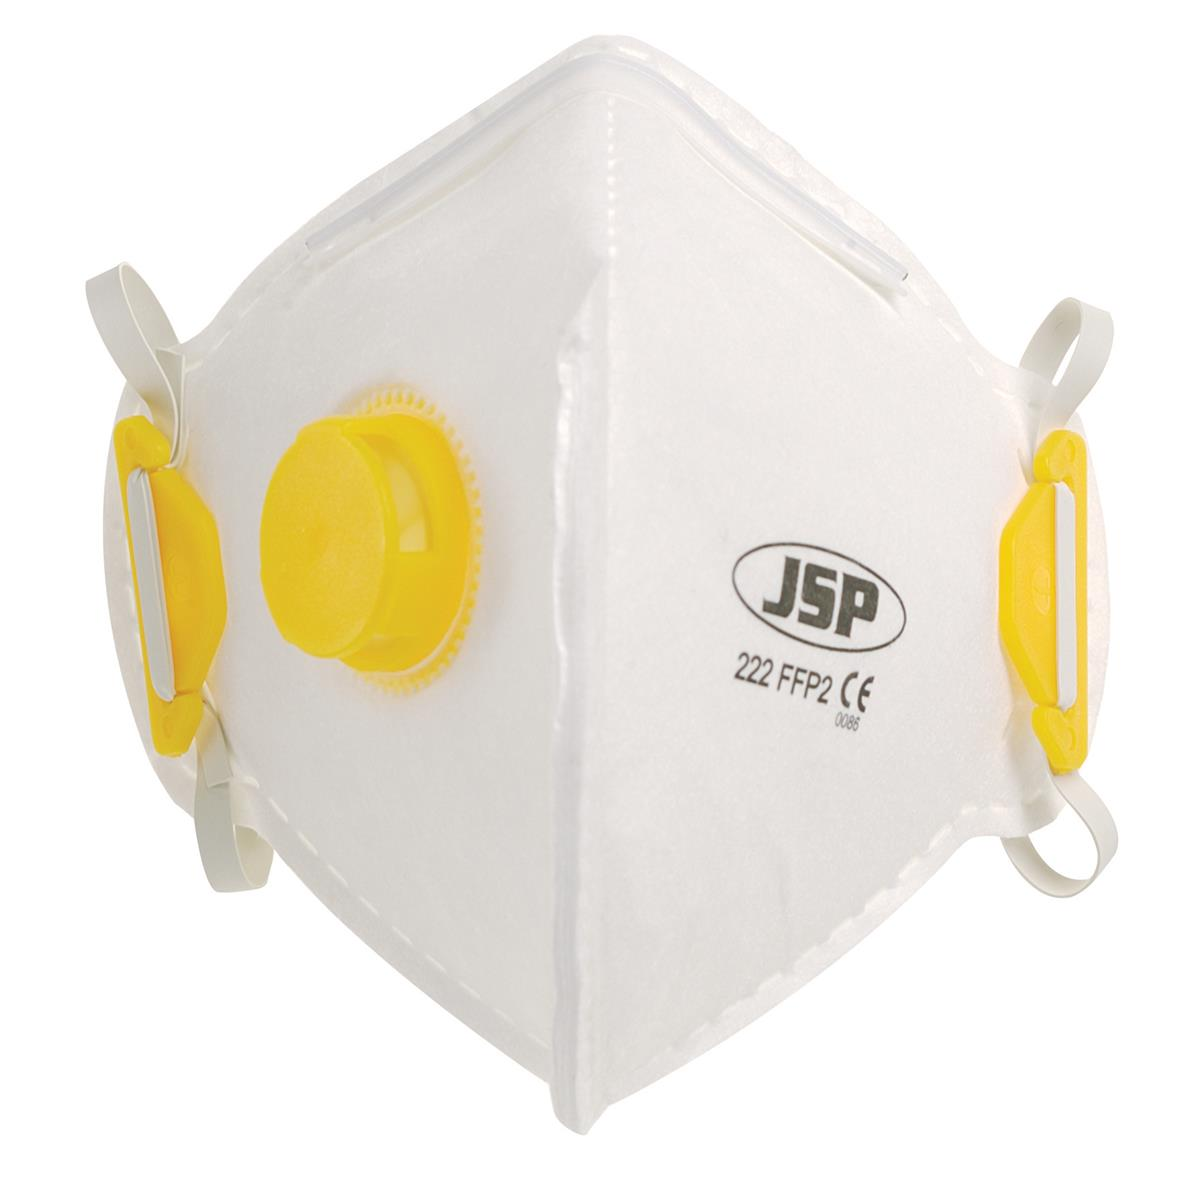 JSP Disposable Mask Valved Fold-flat FFP2 Class 2 EN149:2001 & A1:2009 Ref BEB120-101-000 [Pack 10]